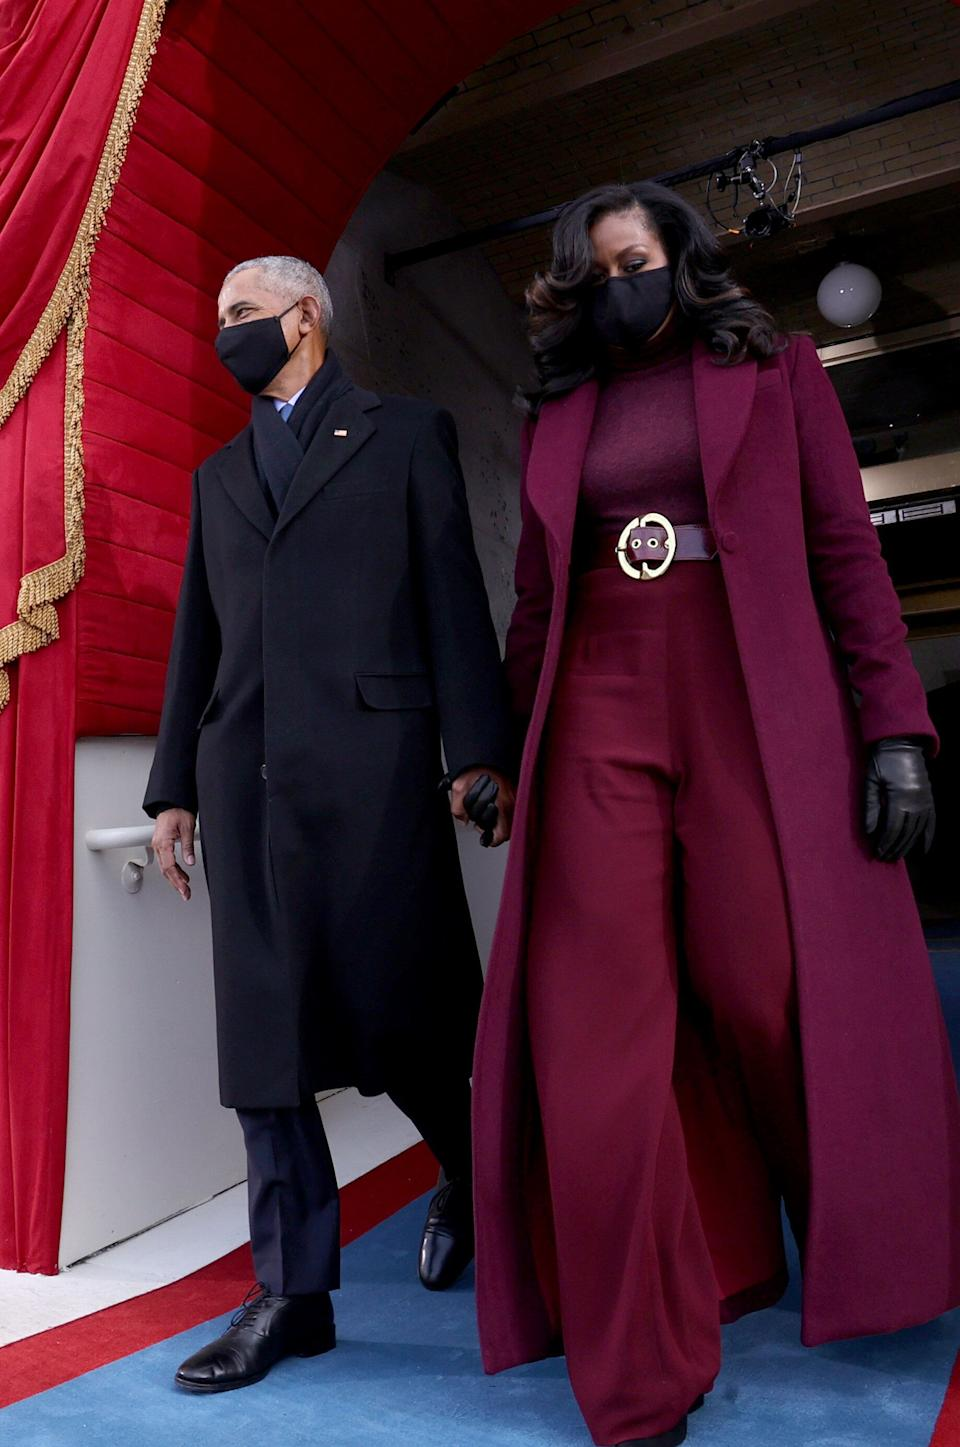 Barack and Michelle Obama arrive at the inauguration ceremony. (Photo: JONATHAN ERNST via Getty Images)